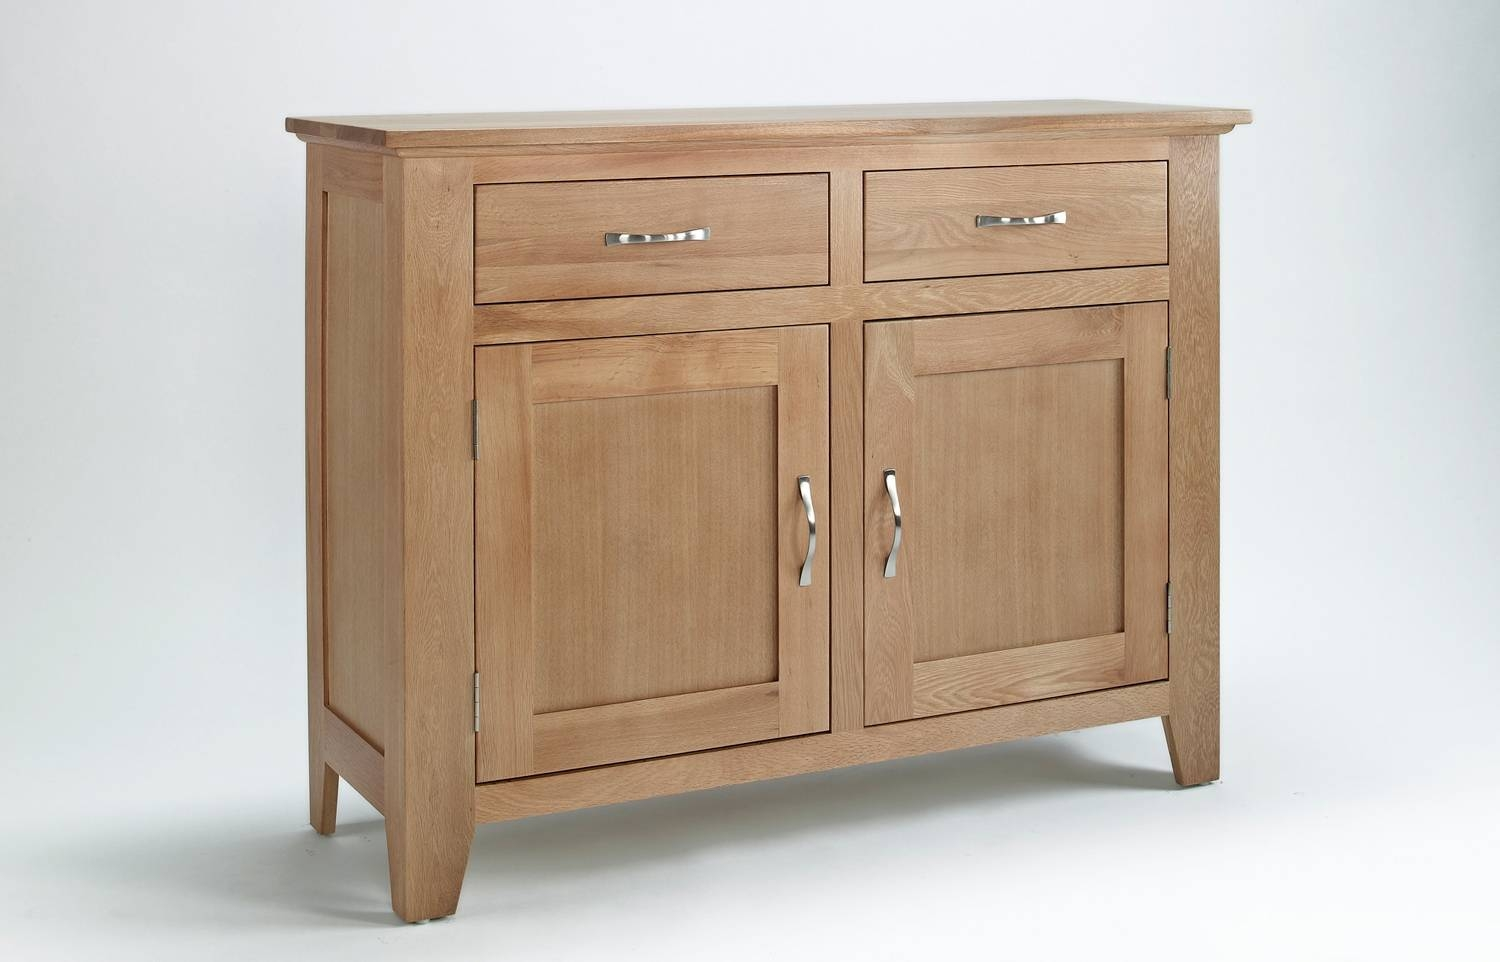 Sherwood Oak Sideboard With 2 Doors & 2 Drawers Intended For Sideboards With Drawers (View 11 of 15)